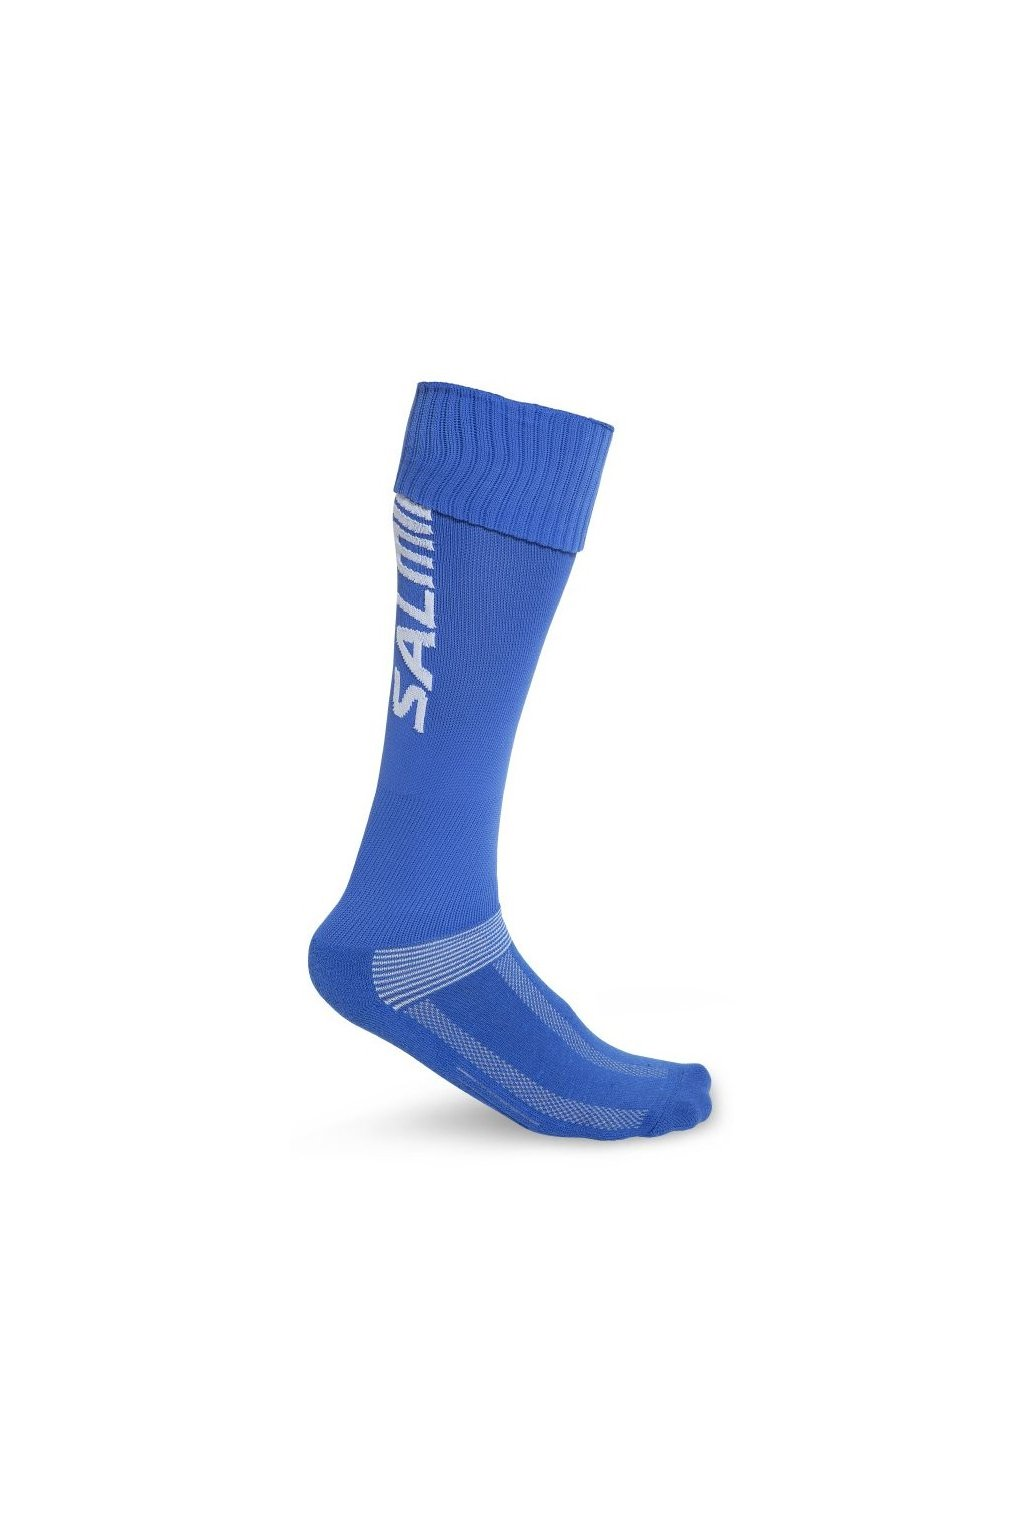 salming coolfeel teamsock long (2)